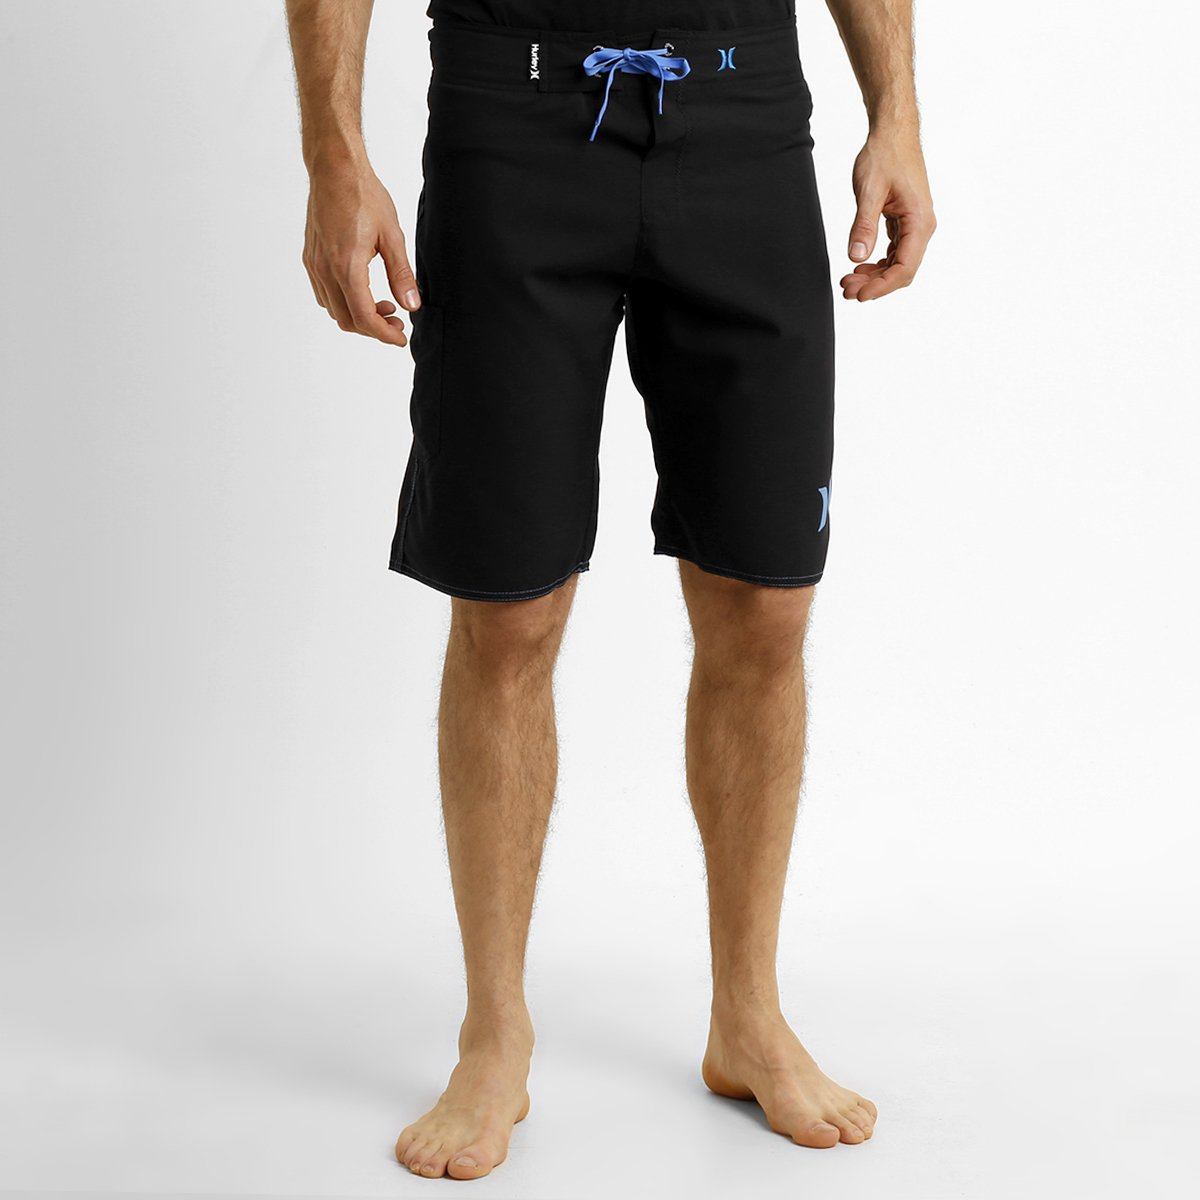 Bermuda Hurley Água One Only - Compre Agora  504d0a04dad